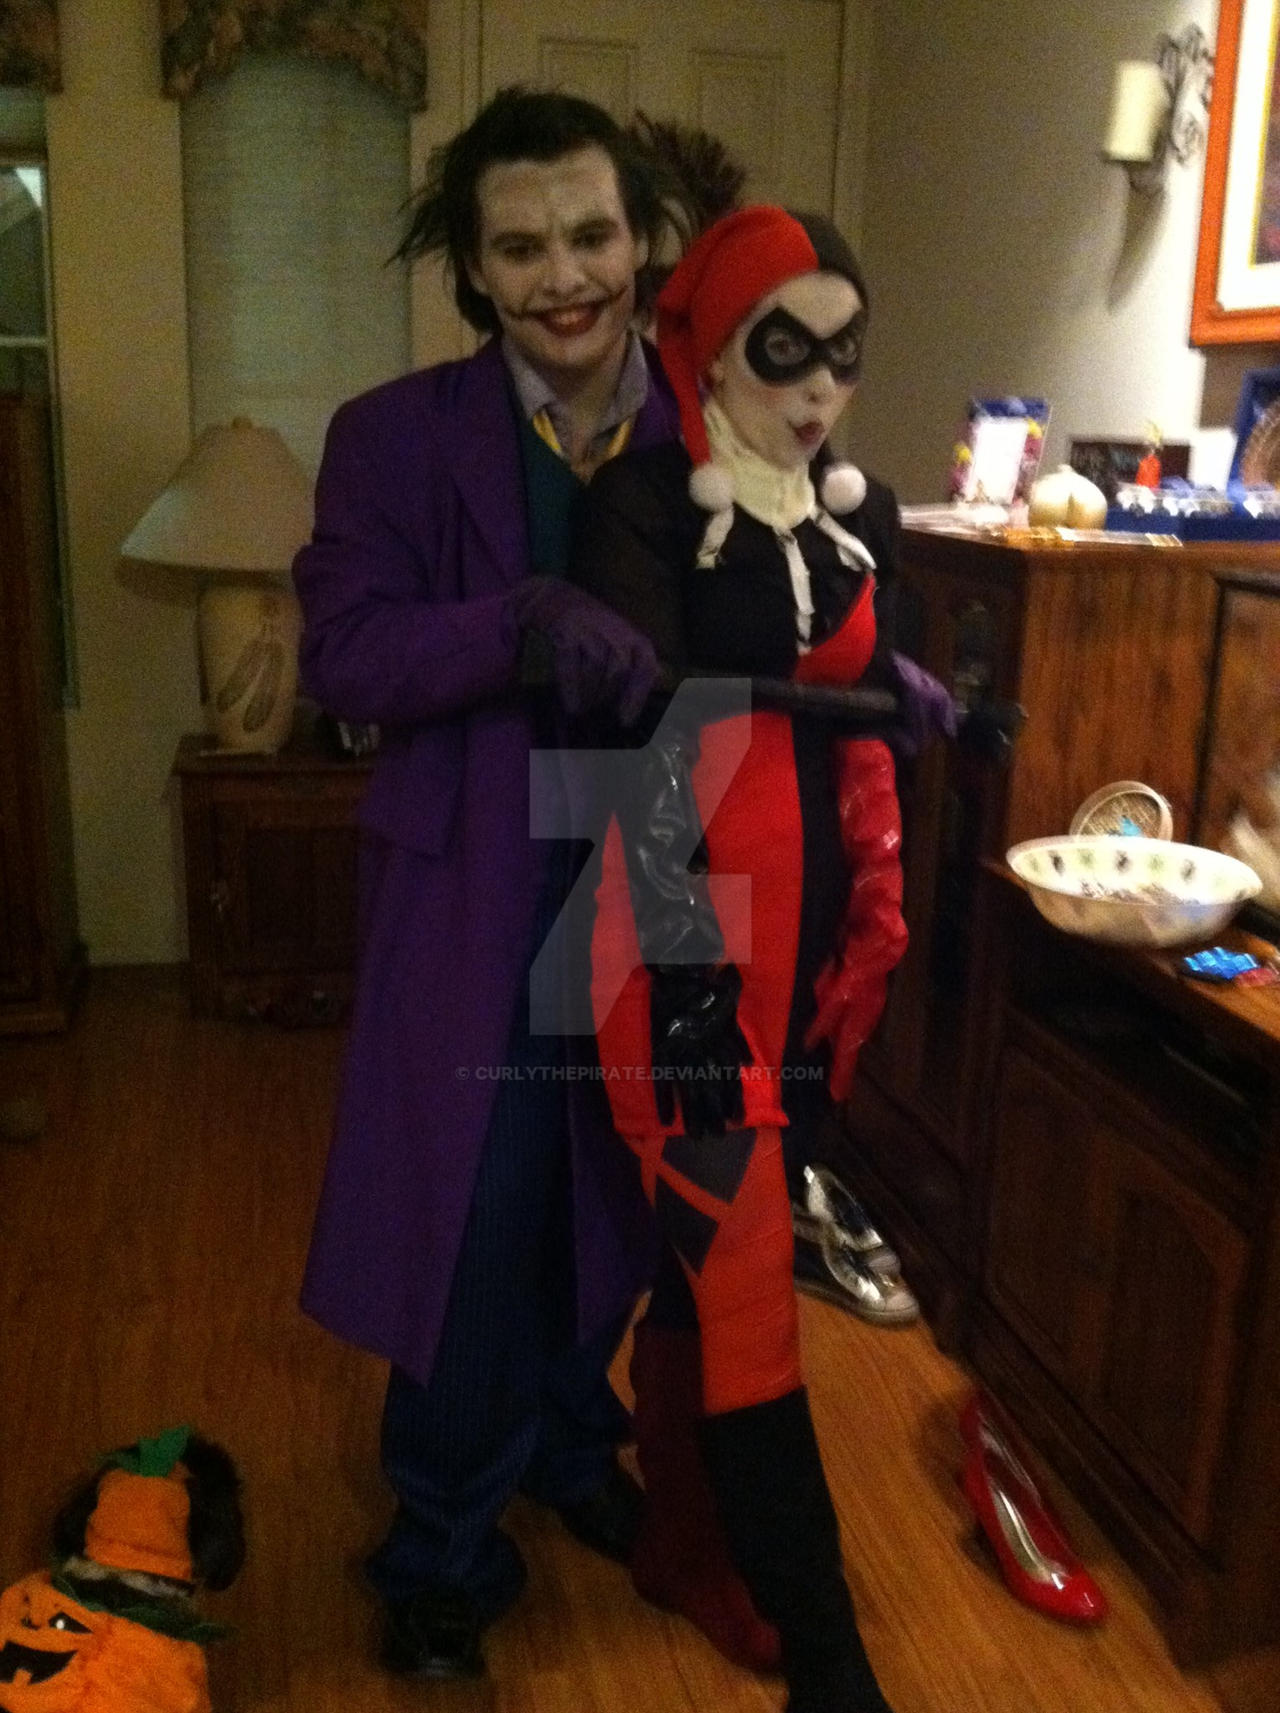 The Joker and Harley Quinn , Halloween Costume by CurlythePirate